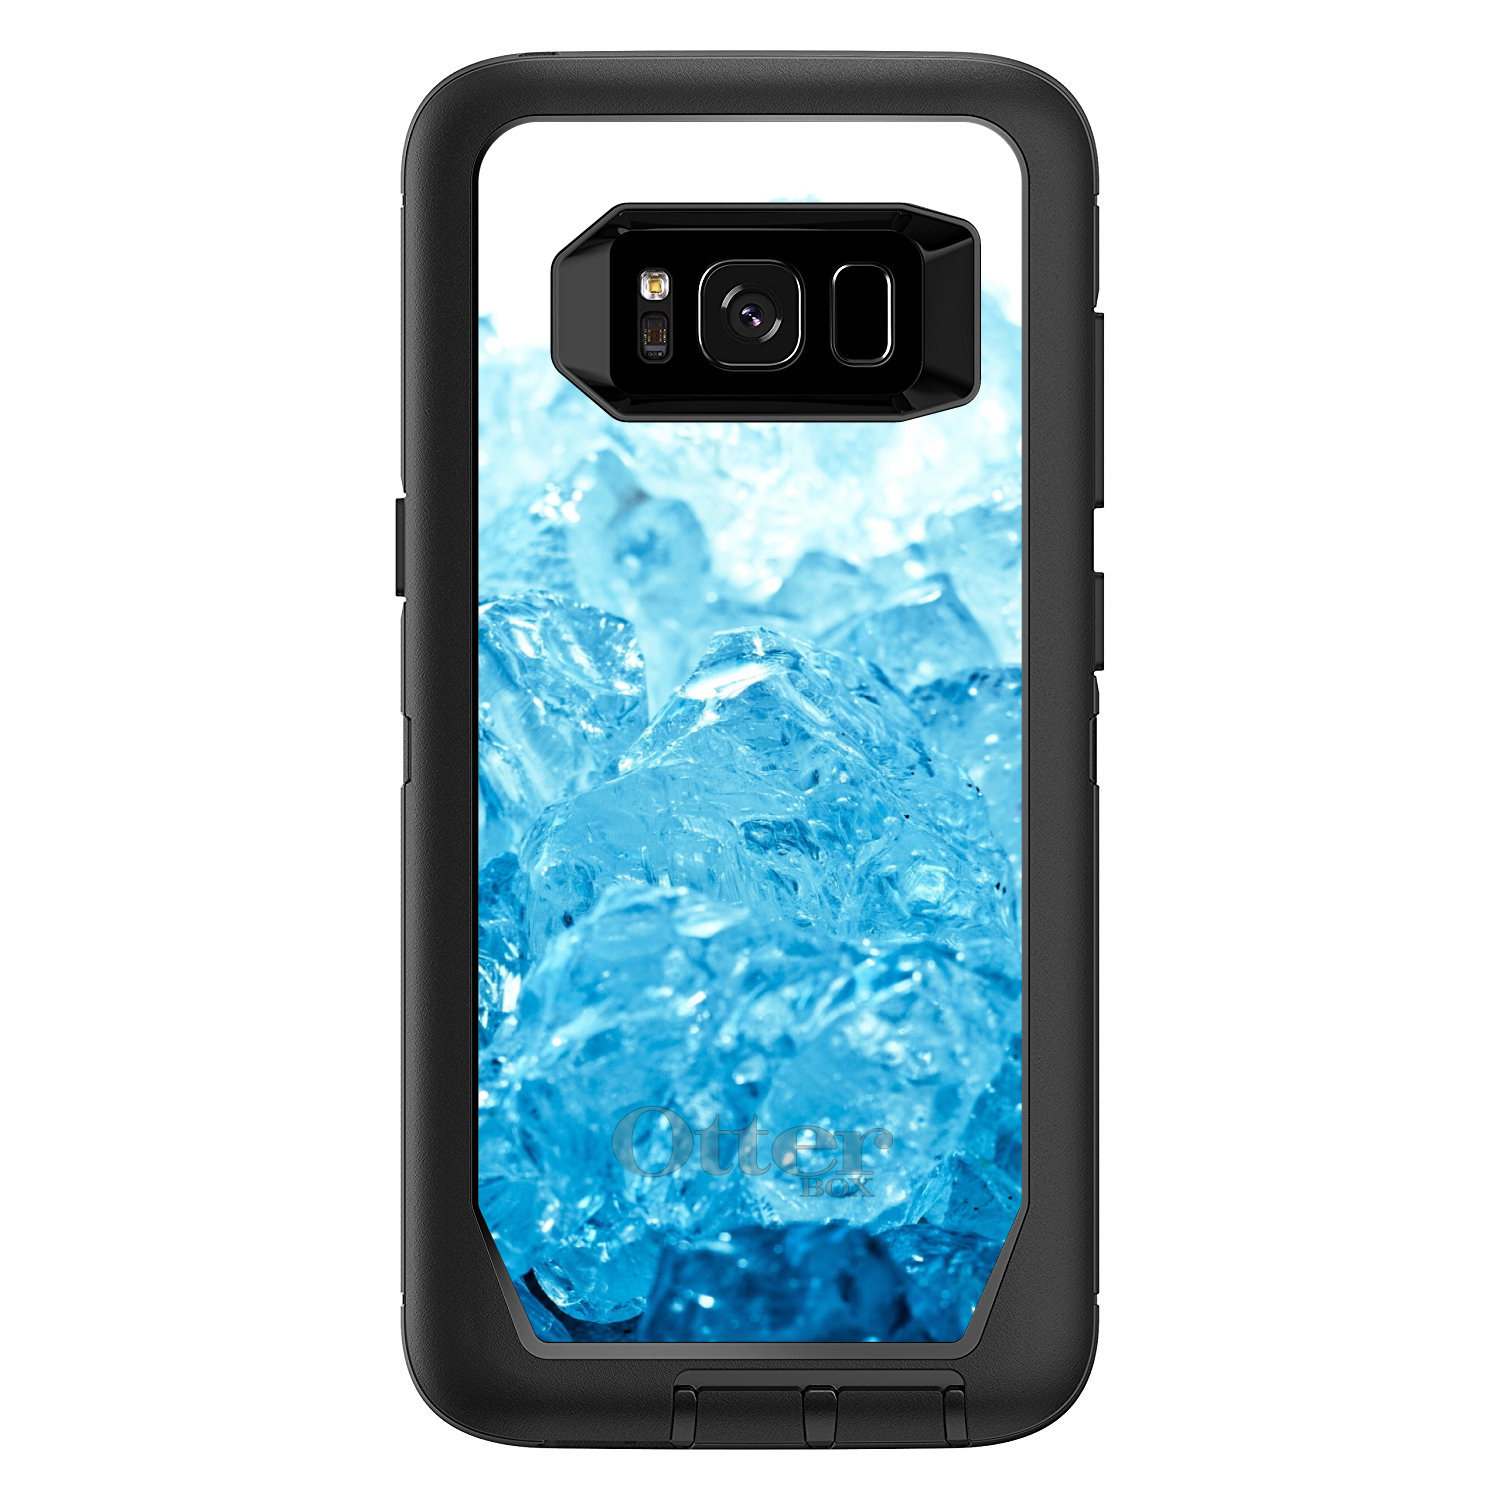 "DistinctInk™ Custom Black OtterBox Defender Series Case for Samsung Galaxy S8 (5.8"" Screen) - Clear Blue Ice"